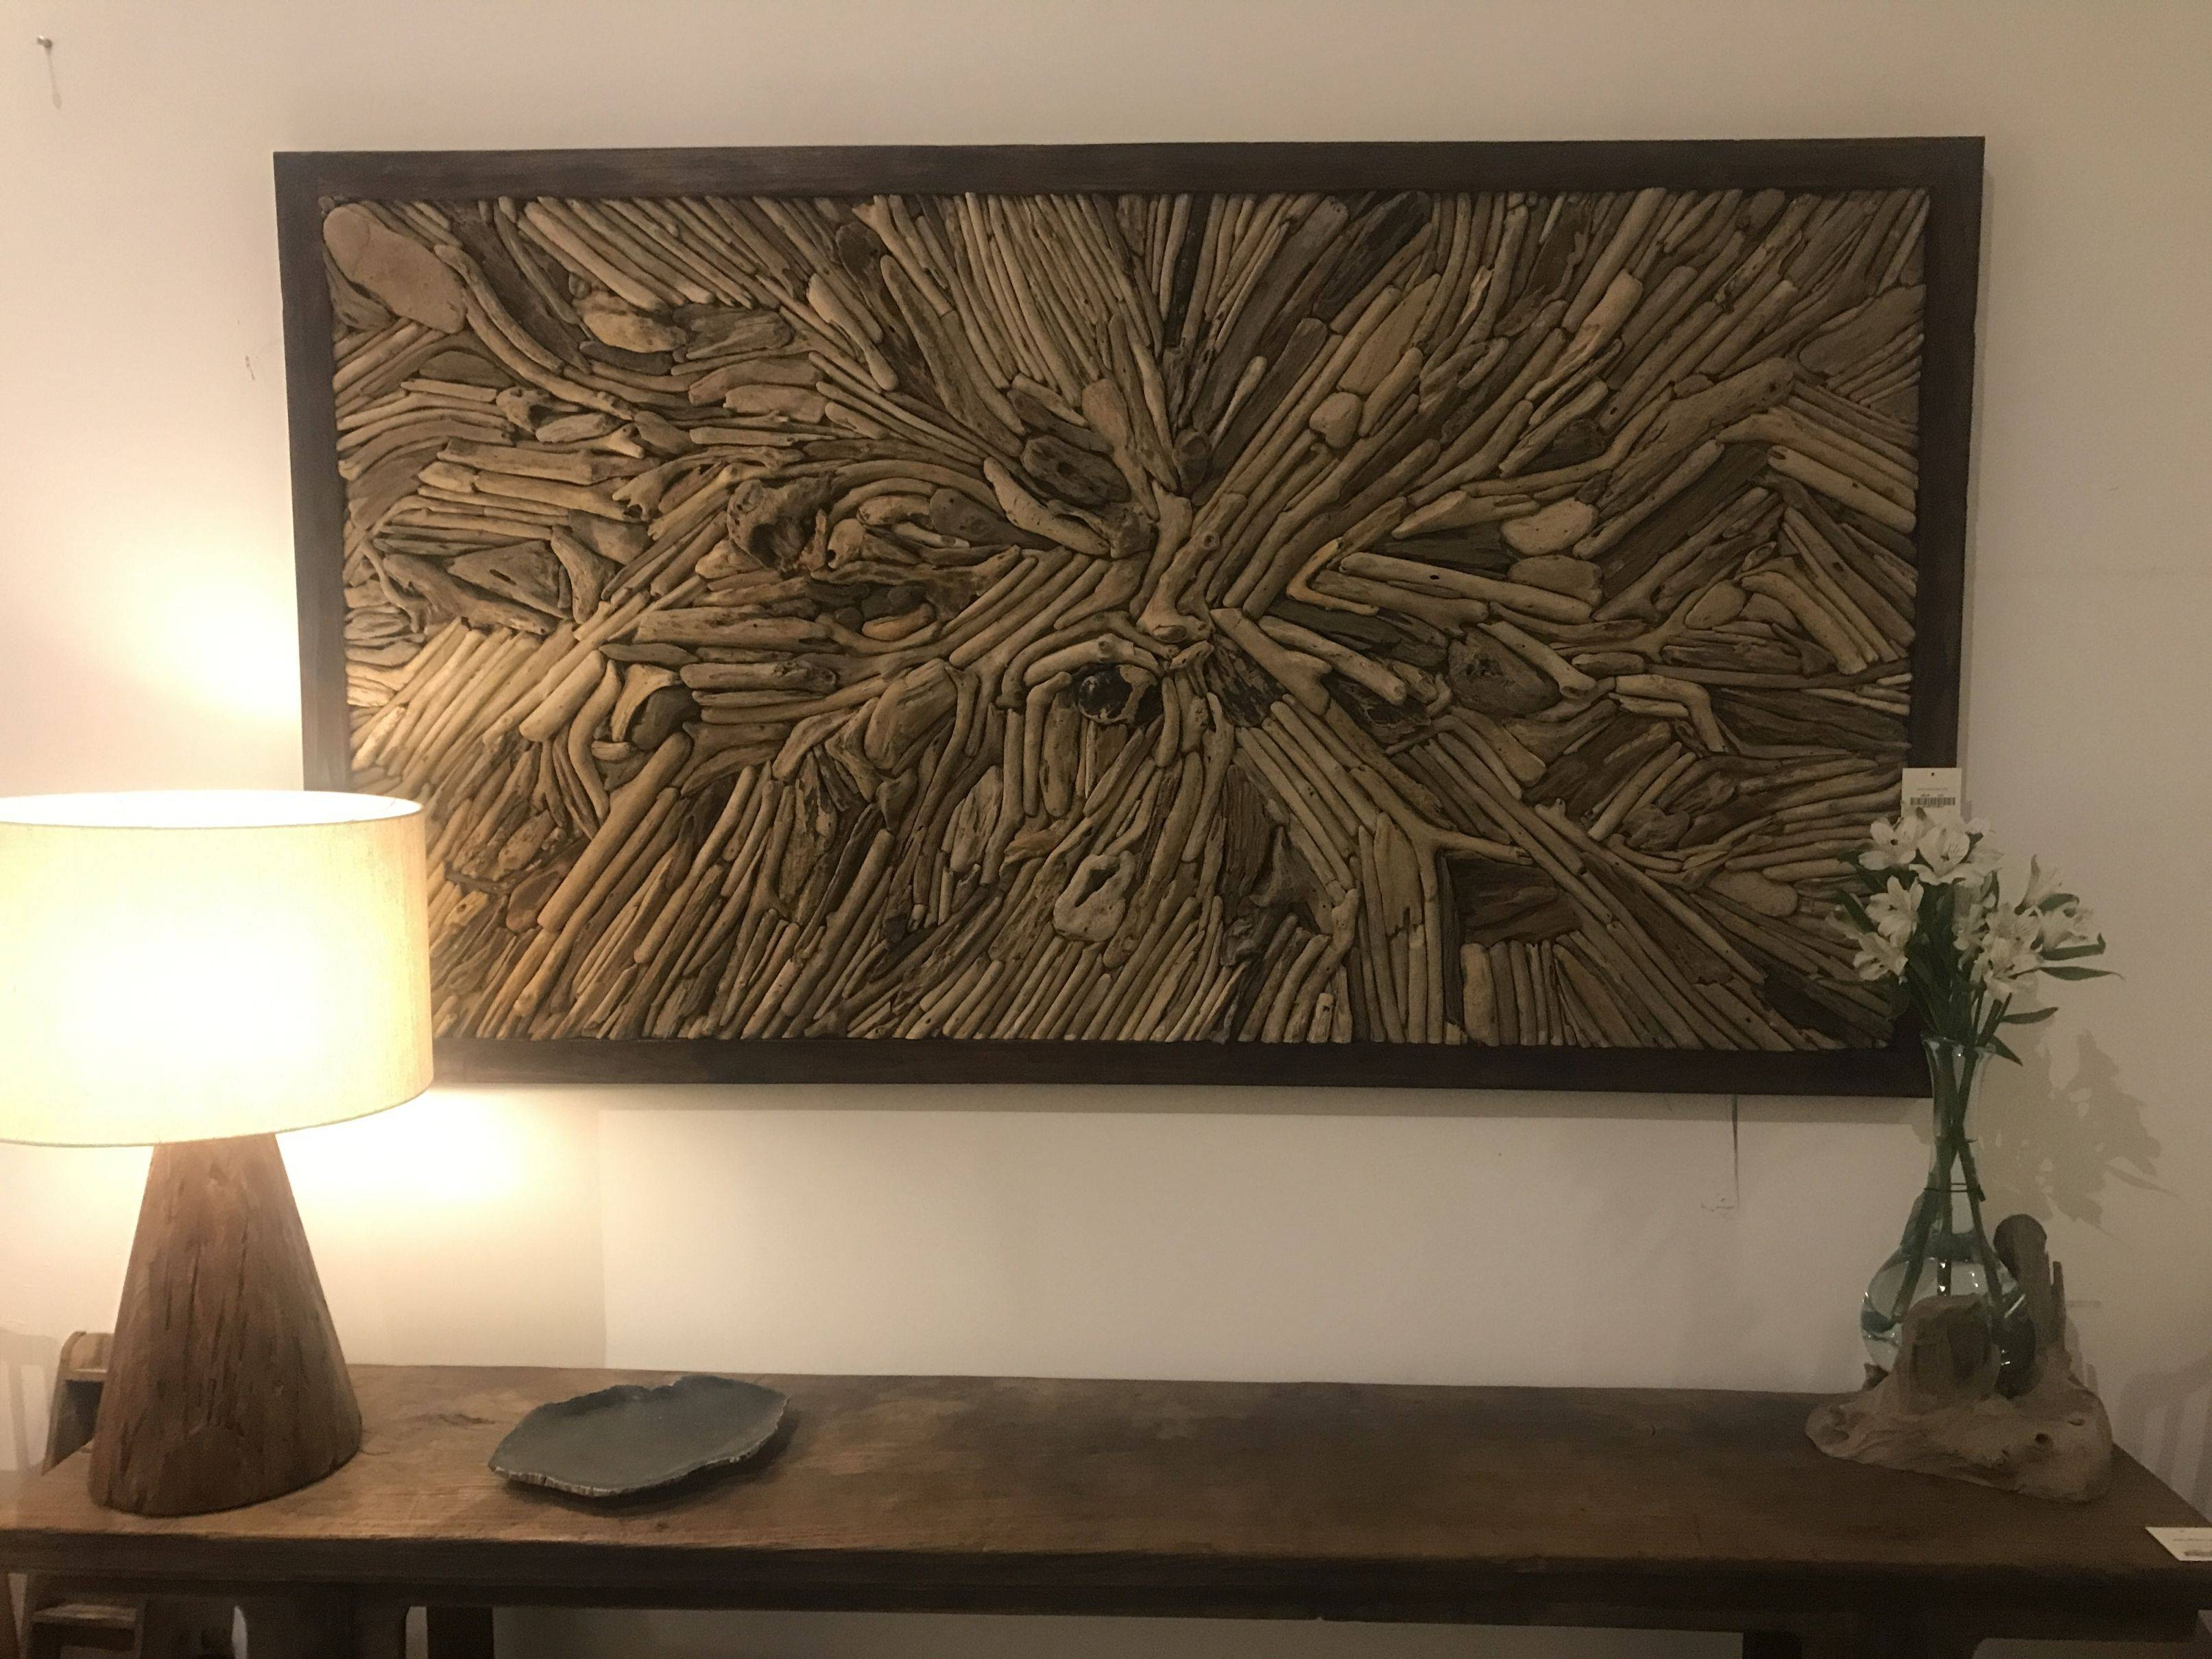 Driftwood Wall Art – Mecox Gardens For Most Current Driftwood Wall Art (View 12 of 30)